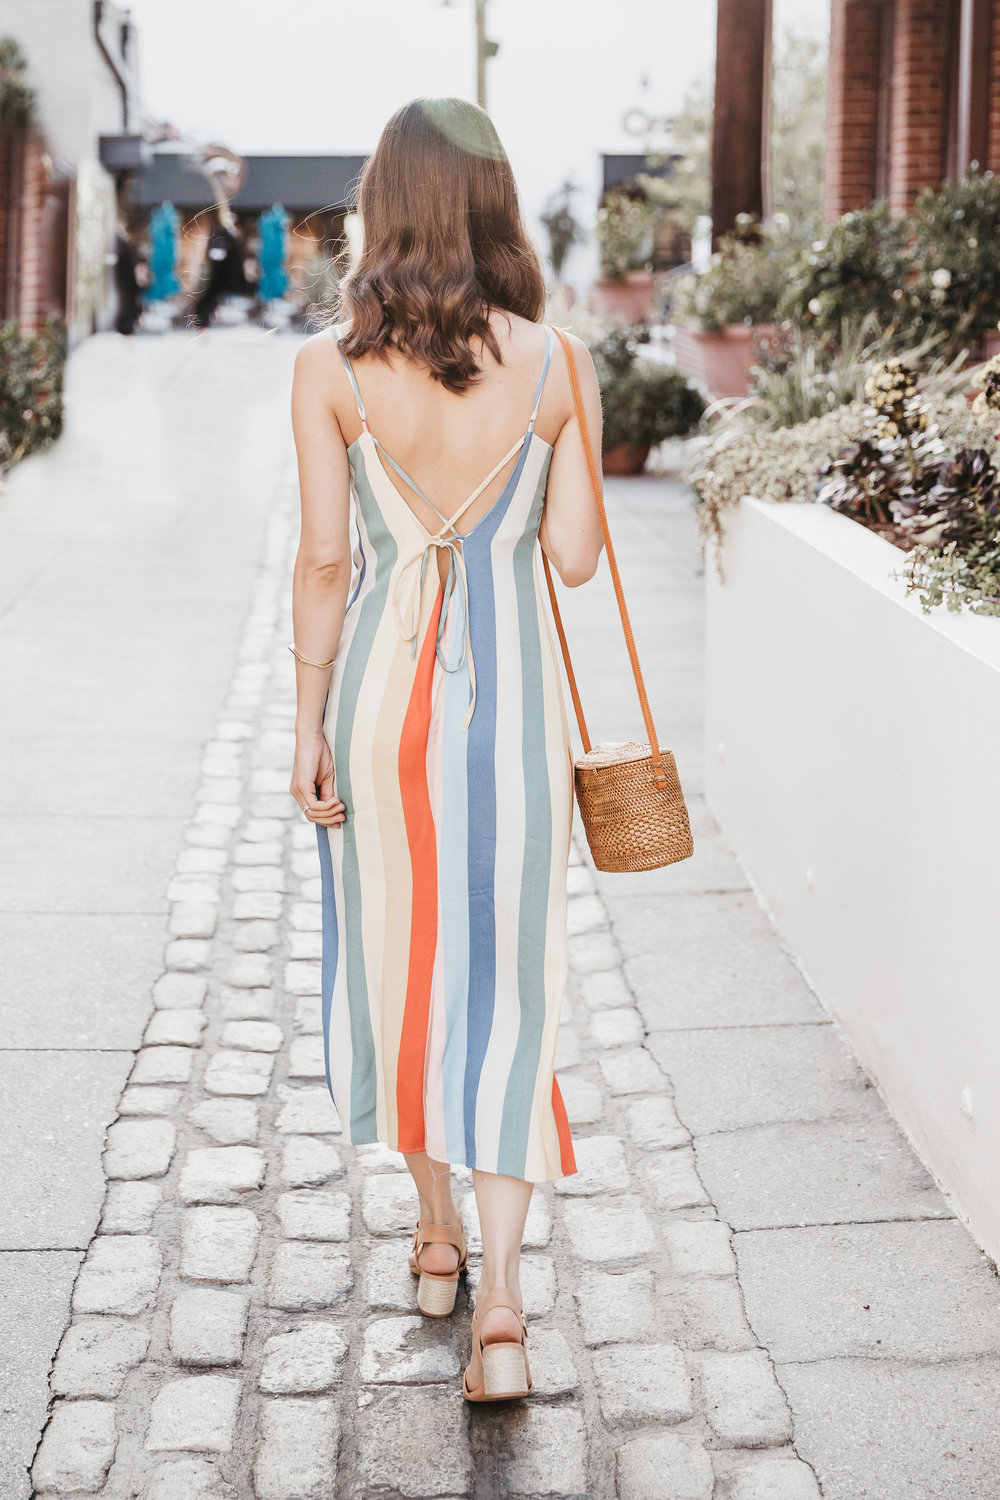 Low back rainbow dress for a sweet Sunday look // A Week Of Bright & Bold Ethical Outfits With Michelle Chavez From Michelle For Good on The Good Trade